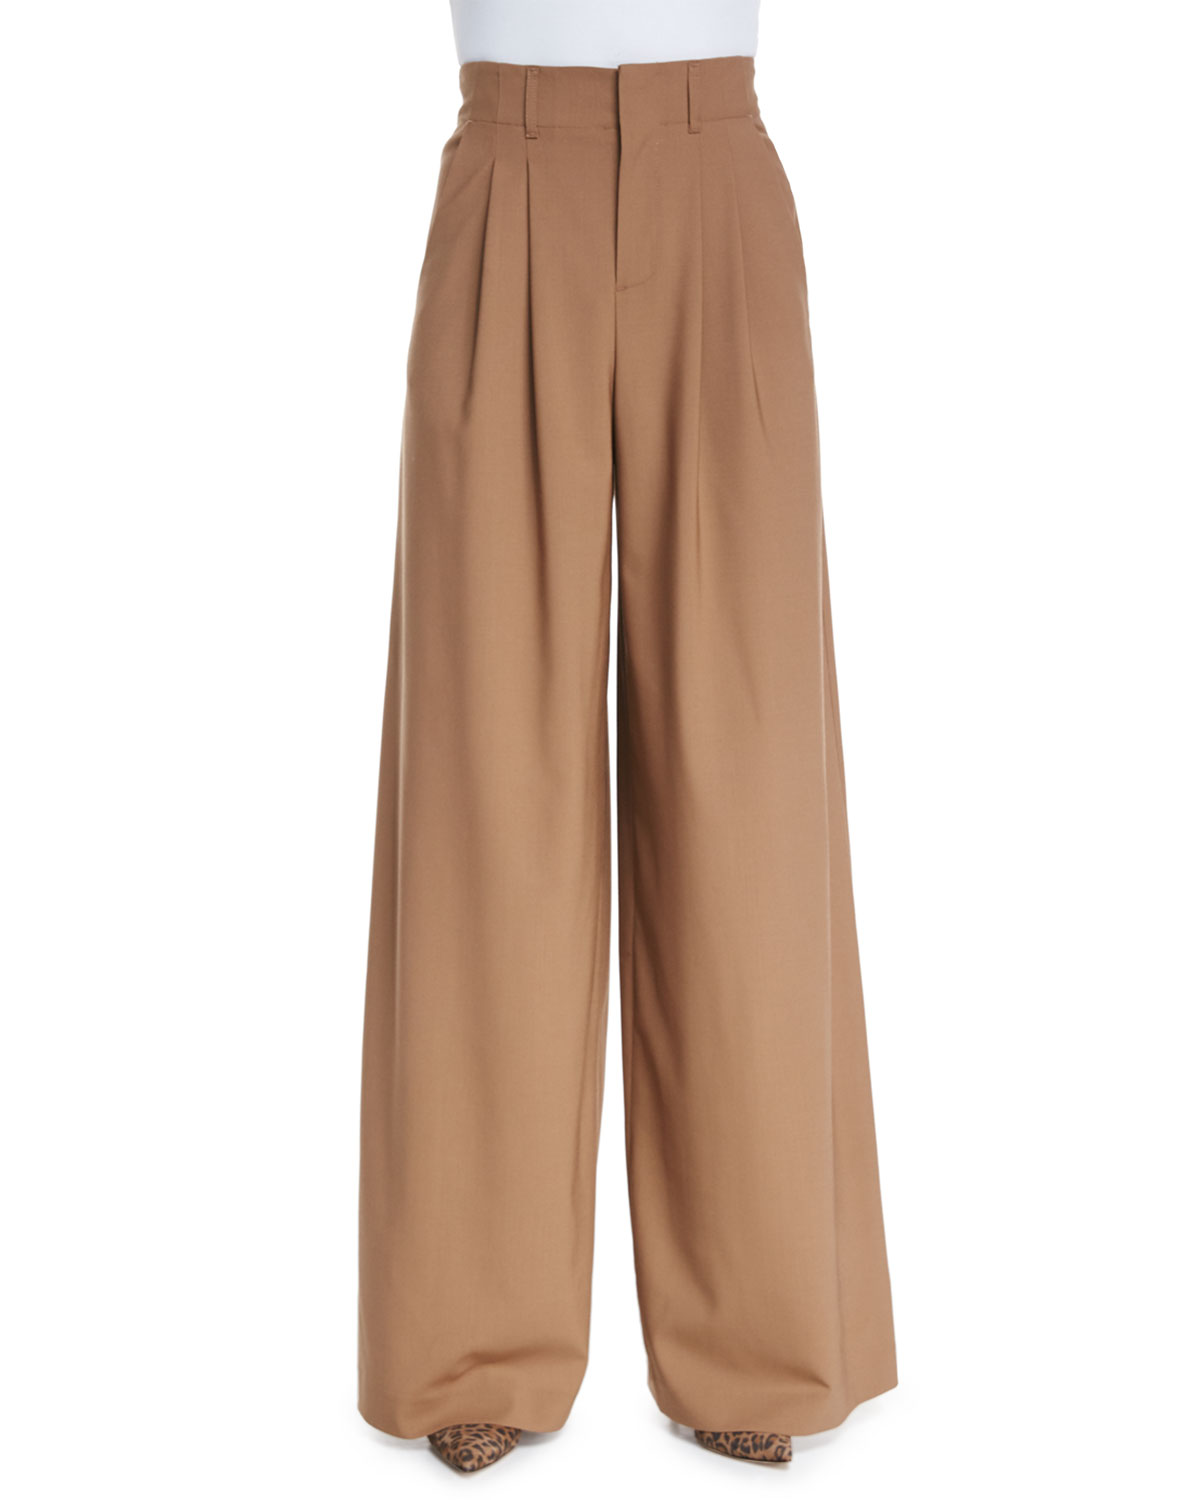 Alice + Olivia High-Waist Pleated Wide-Leg Trousers, , Size: 8 Brown (Camel)